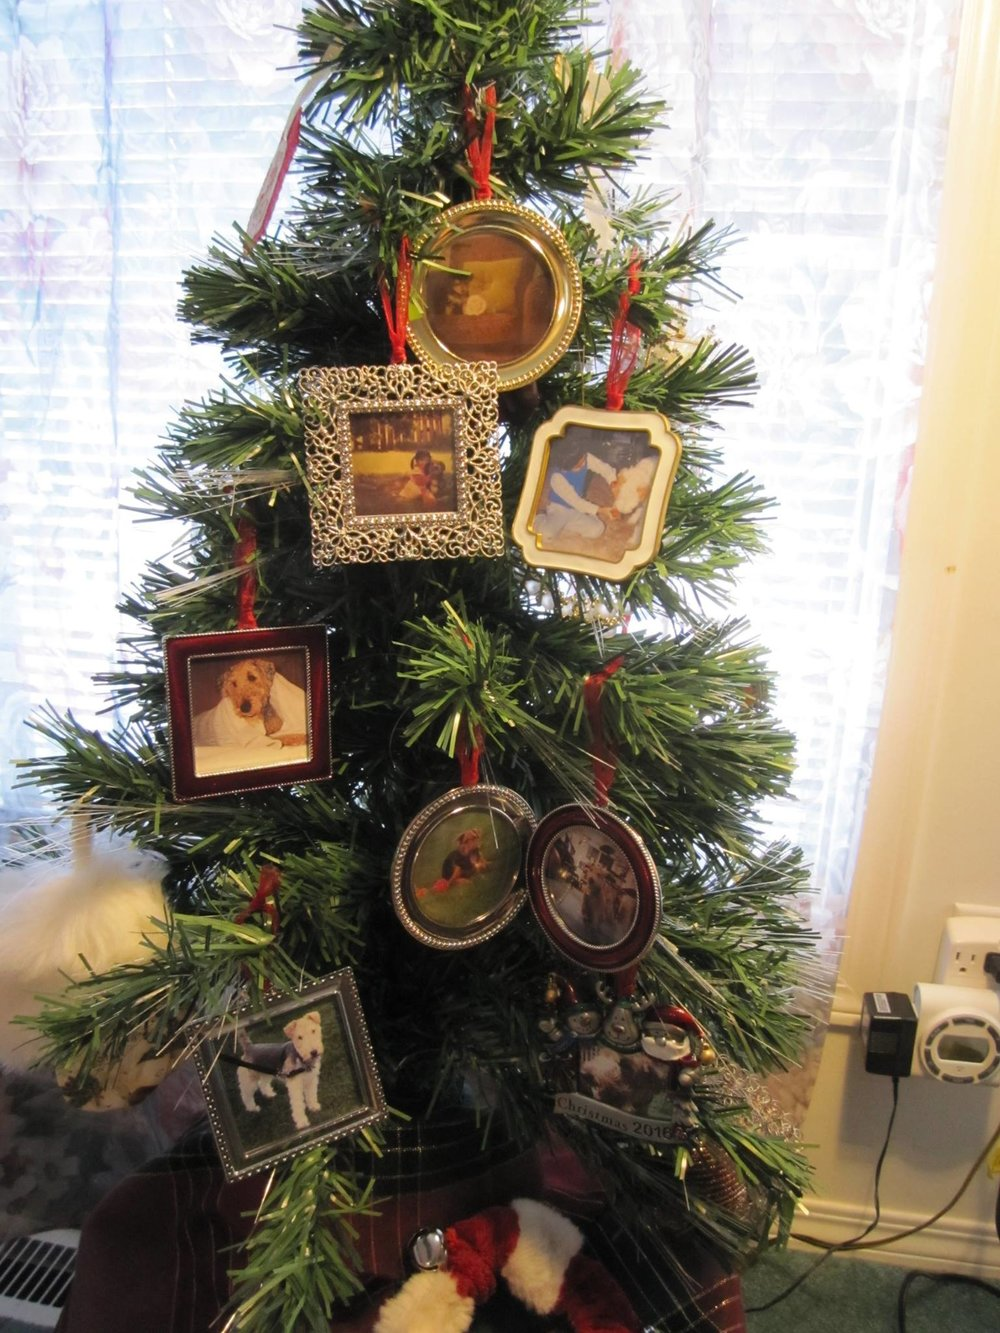 The Arca family dogs through the years, as shown on Maestro's tree. Photo: R-M Arca.